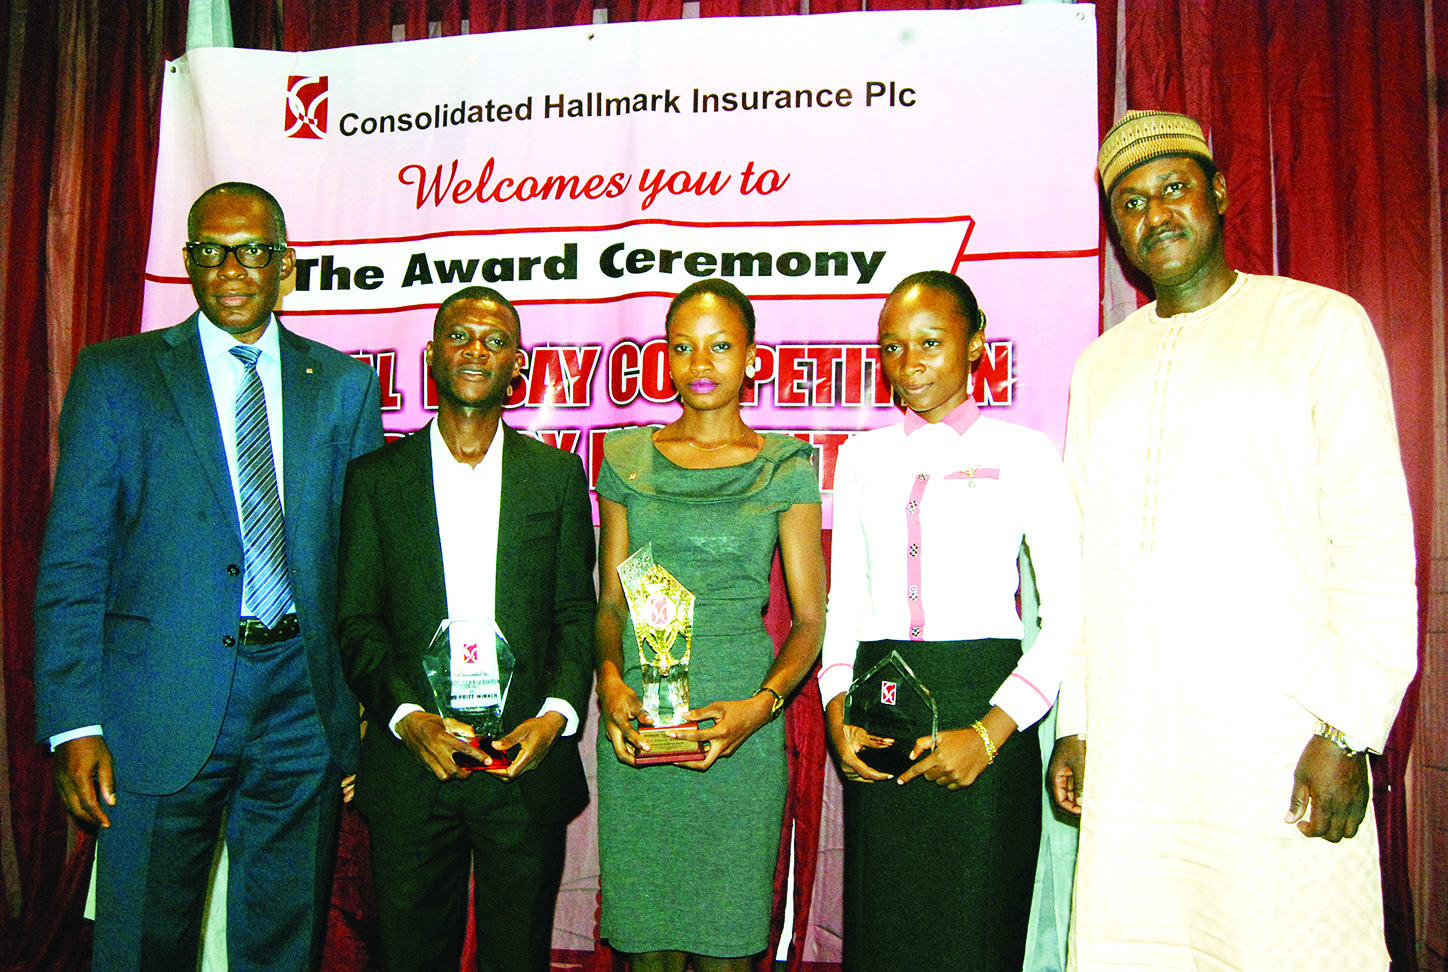 Managing Director/Chief Executive Officer, Consolidated Hallmark Insurance Plc, Eddie Efekoha (left); Second prize winner from University of Uyo, Julius Olabiyi; First winner, of The Polytechnic, Ibadan, Miss Florence Ogunleye; Third winner, of University of Uyo, Miss Eskwu Ifeanyichukwu, and  Director, Research and IT, National Insurance Commission,  Adamu Balanti, at the company's yearly essay competition for tertiary institutions  in Lagos.